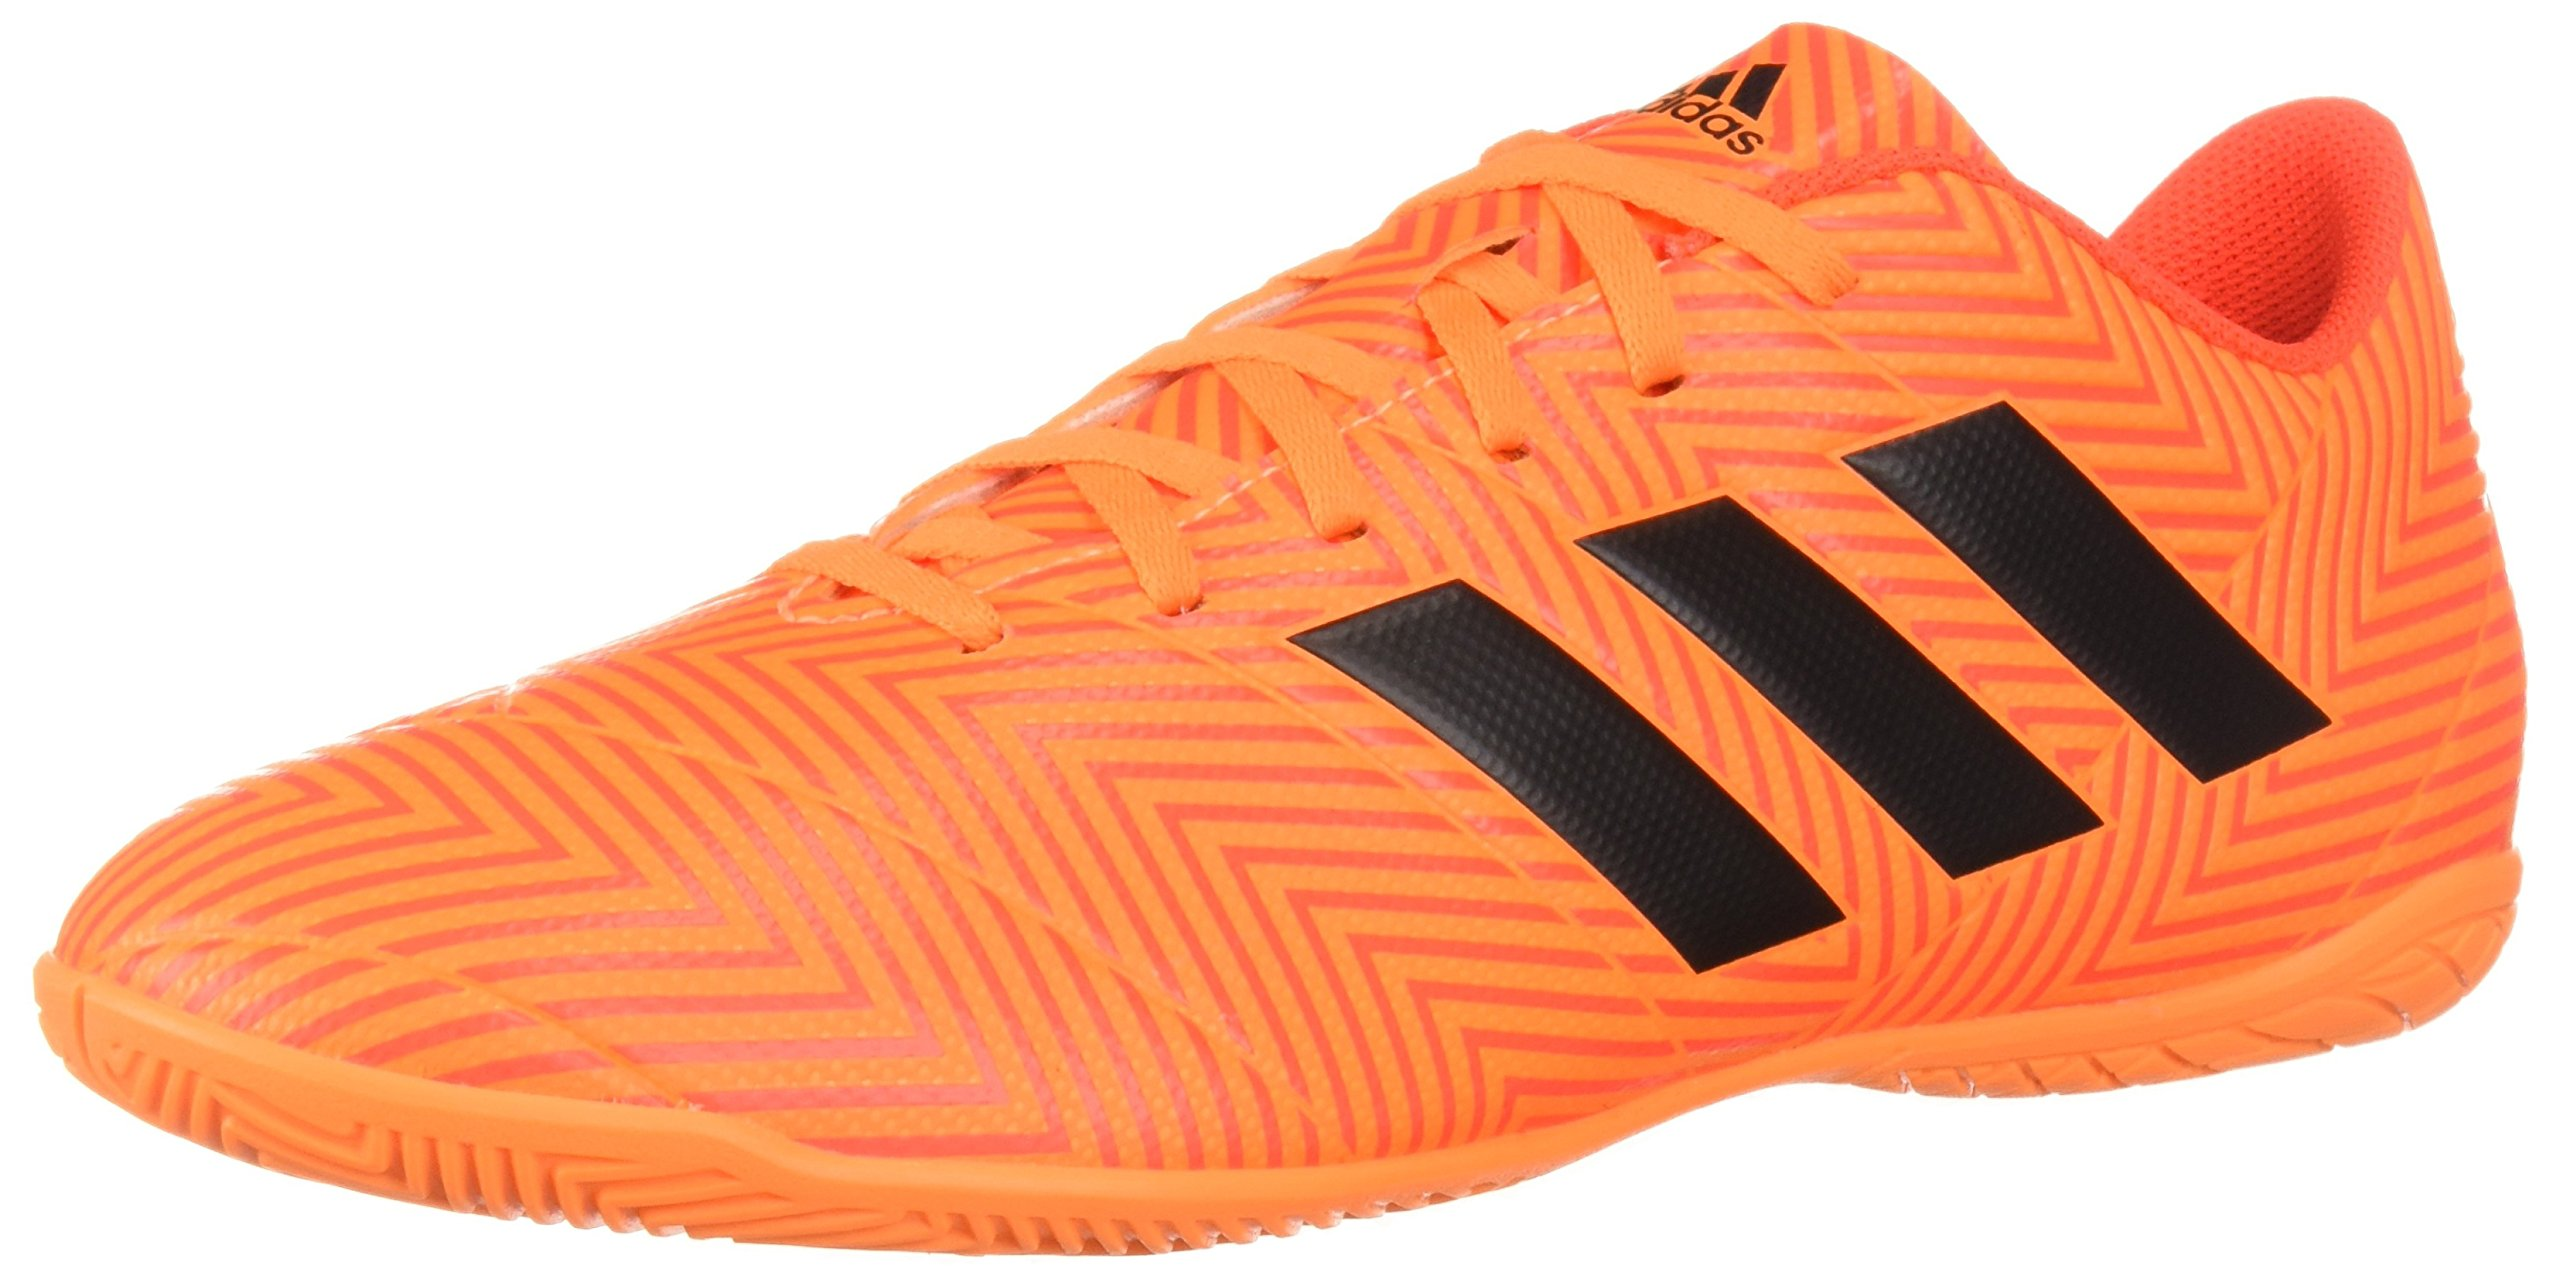 adidas Men's Nemeziz Tango 18.4 Indoor Soccer Shoe, Zest/Black/Solar Red, 11.5 M US